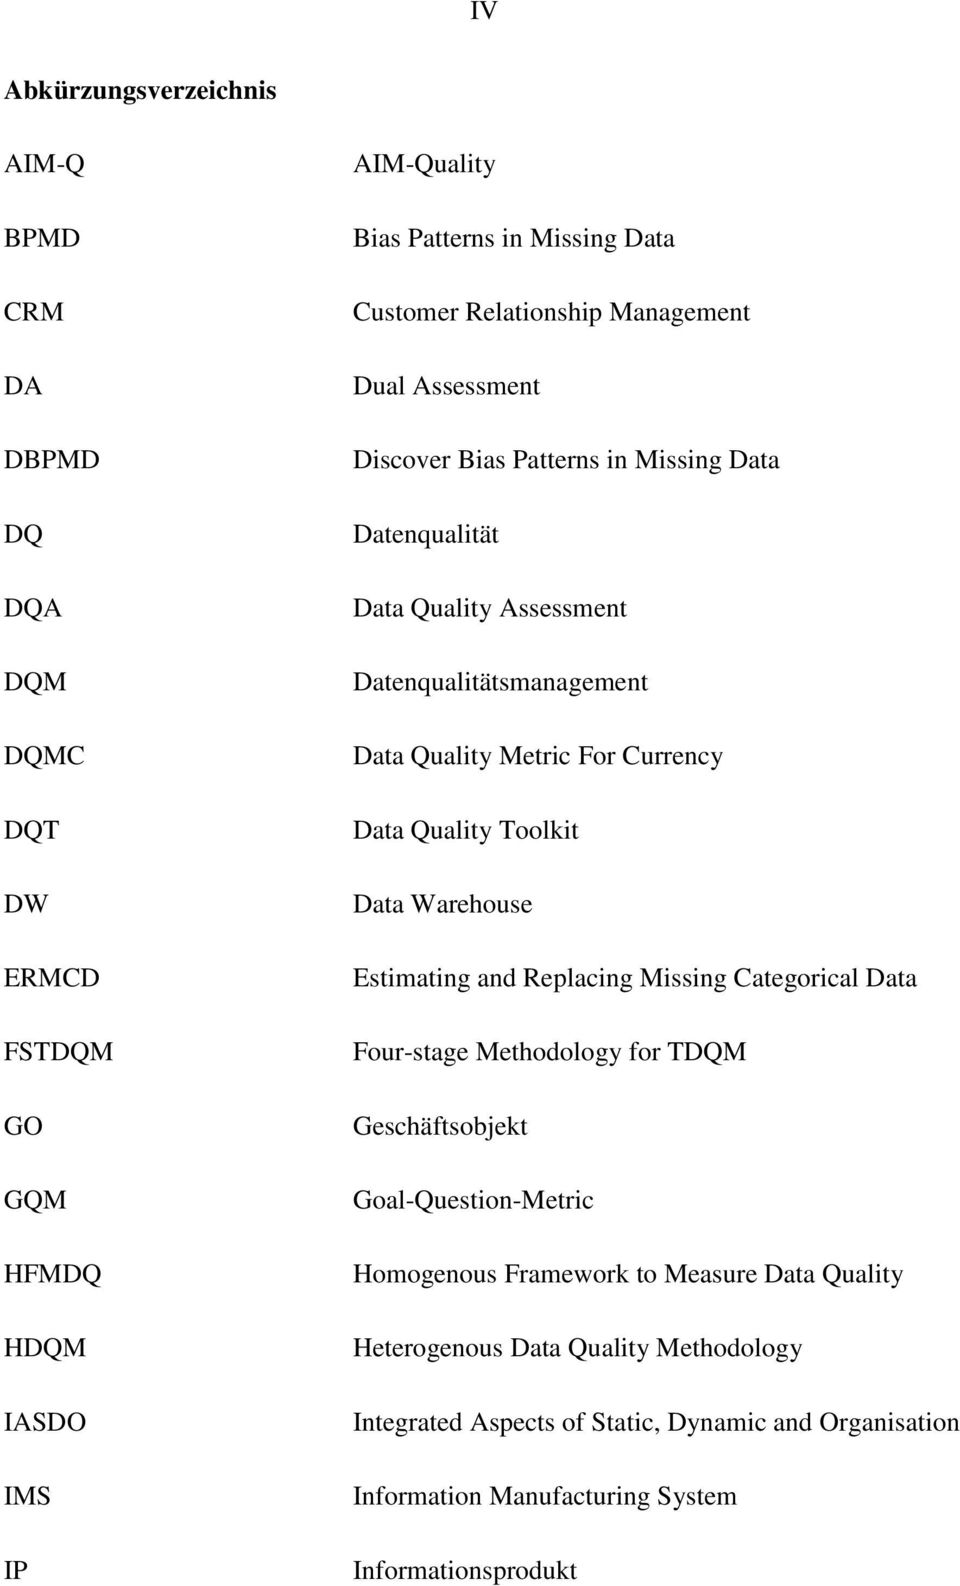 Currency Data Quality Toolkit Data Warehouse Estimating and Replacing Missing Categorical Data Four-stage Methodology for TDQM Geschäftsobjekt Goal-Question-Metric